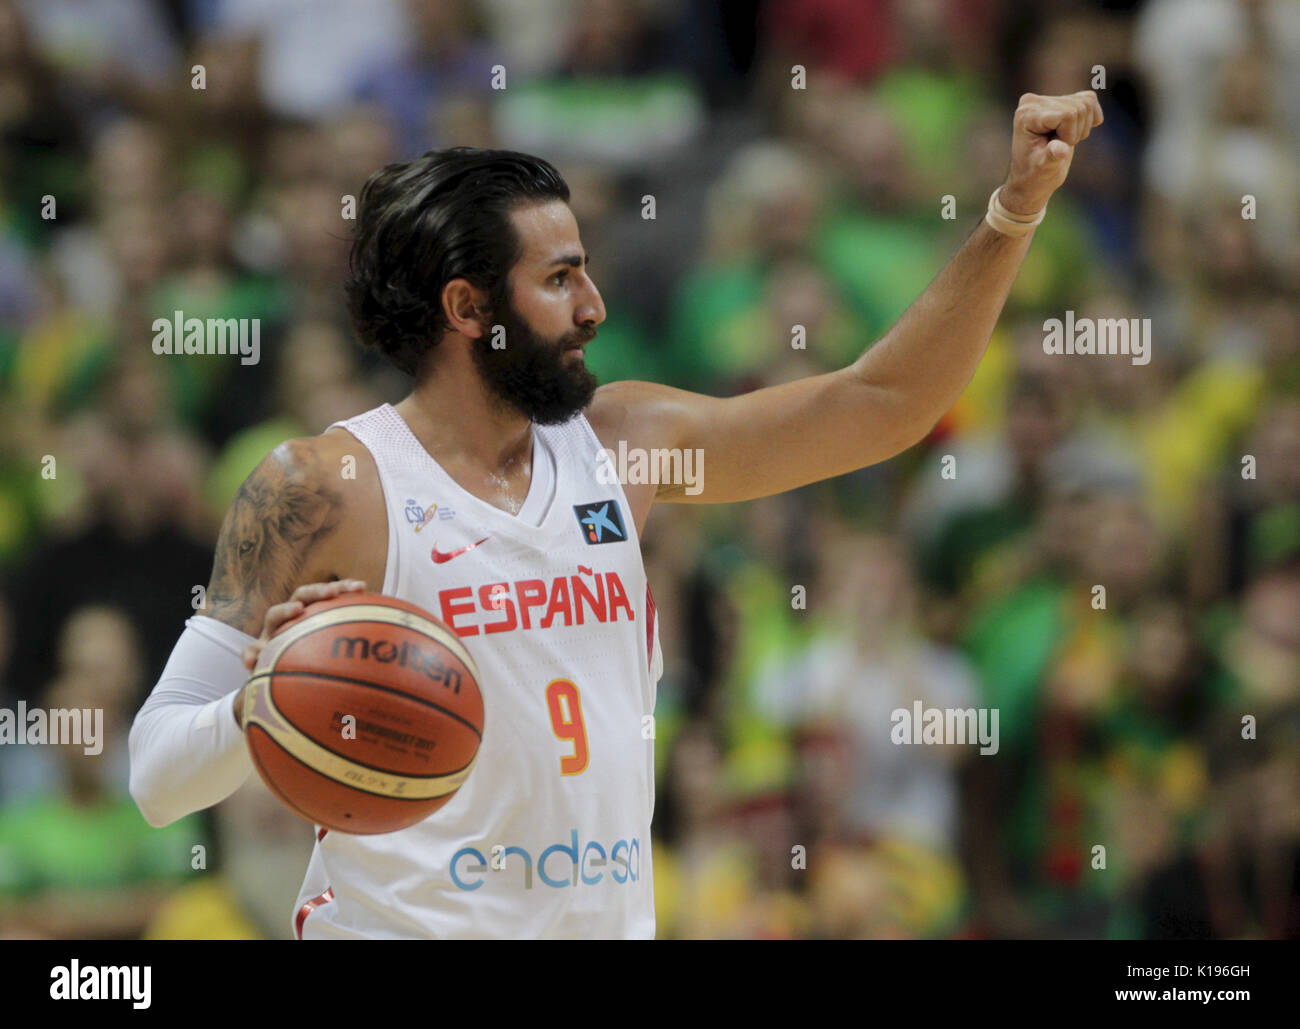 a327efd6651 Ricky Rubio of Spain in action during FIBA frienly basketball game between  Lithuania and Spain in